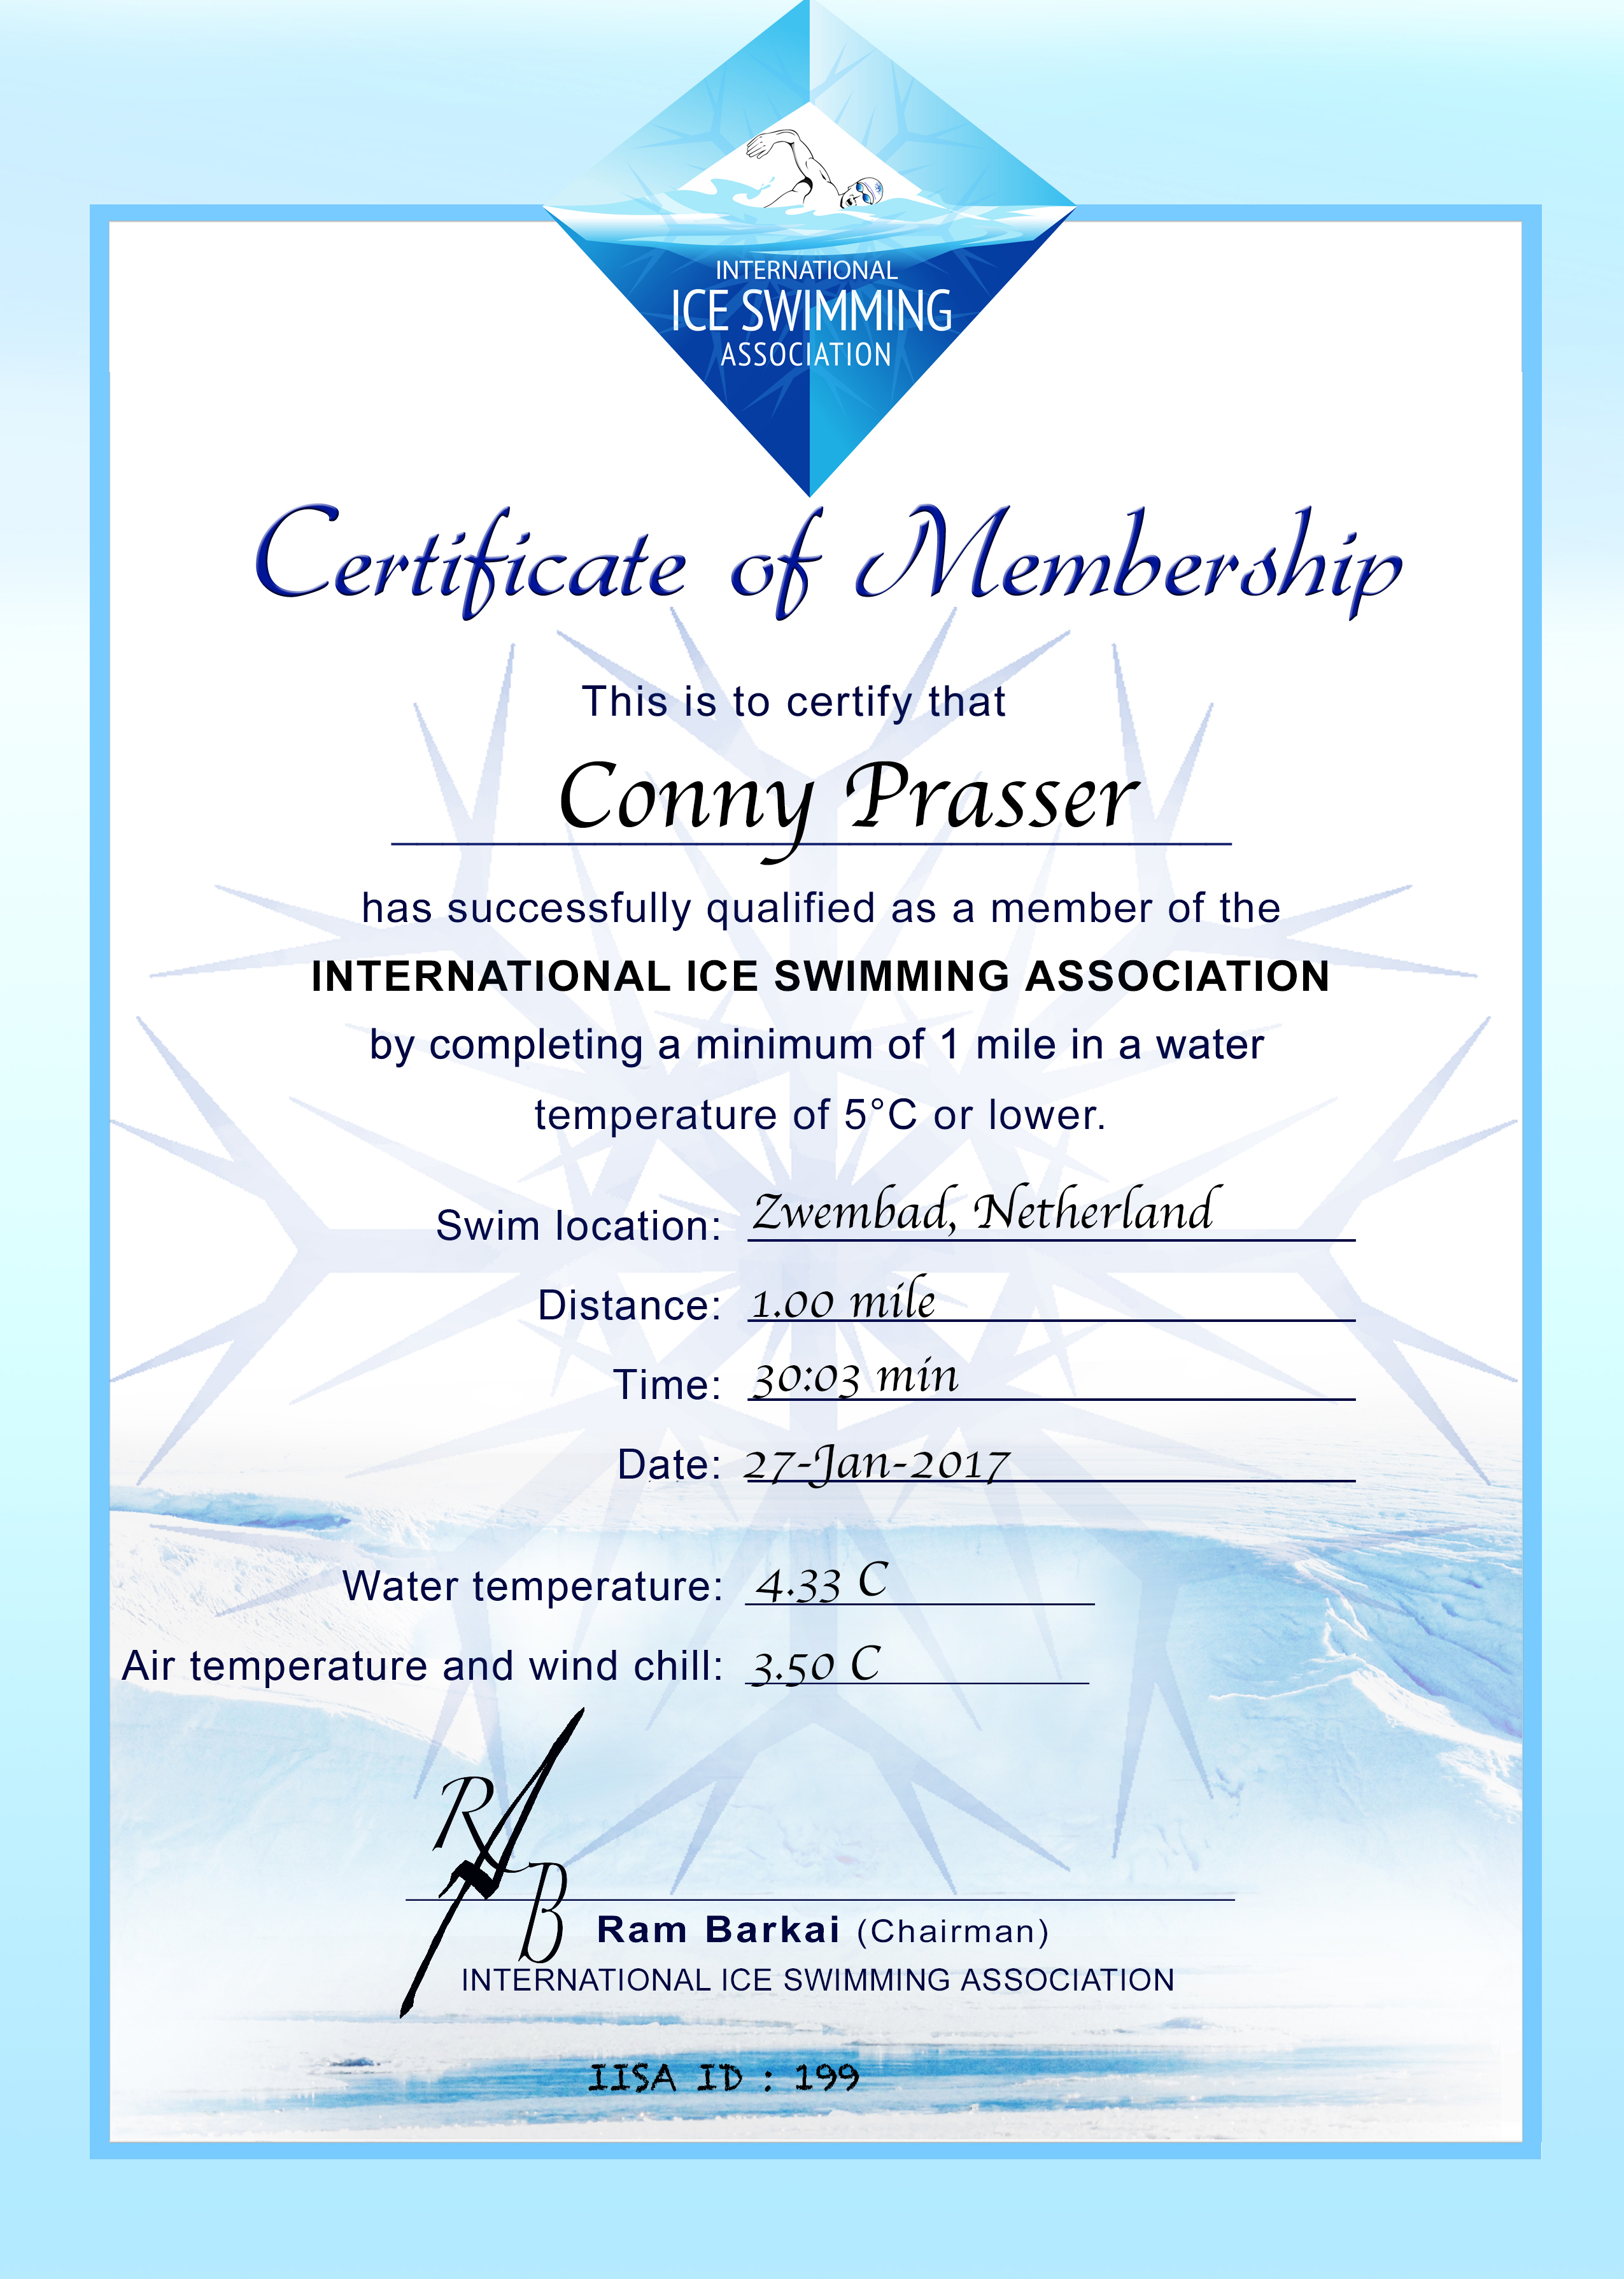 Ice Mile Certificate - Conny Prasser